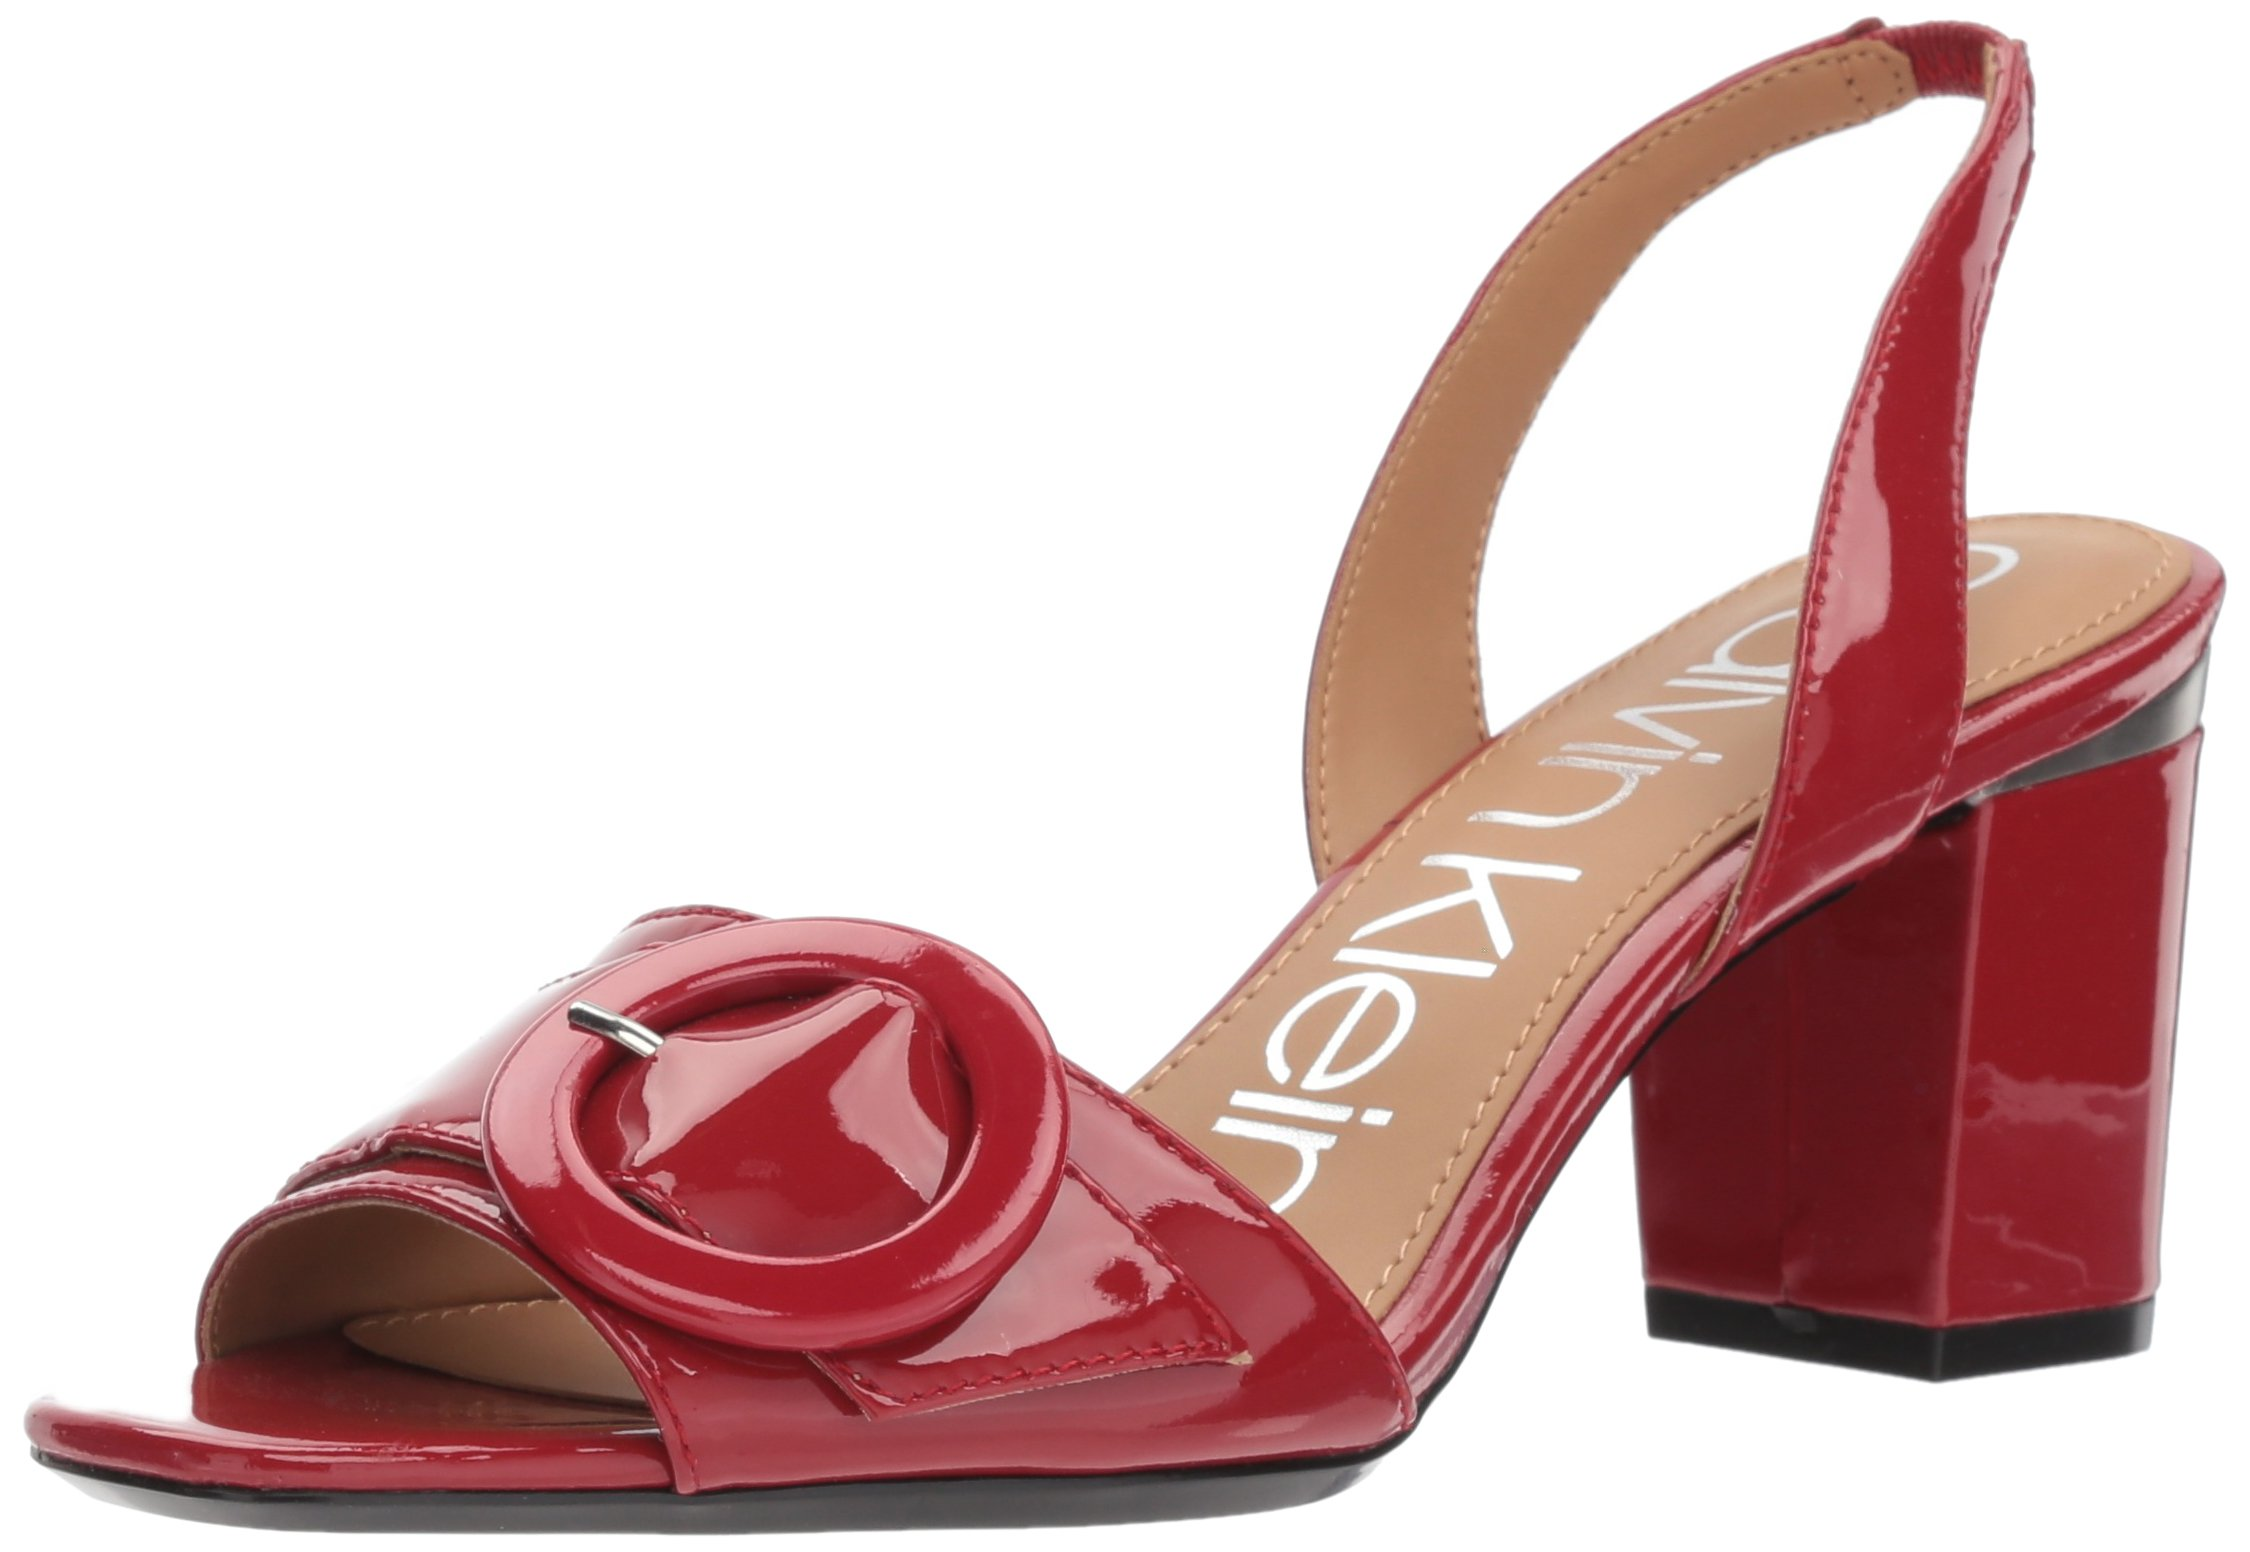 Calvin Klein Women's Claudia Heeled Sandal, Crimson Red, 9.5 Medium US